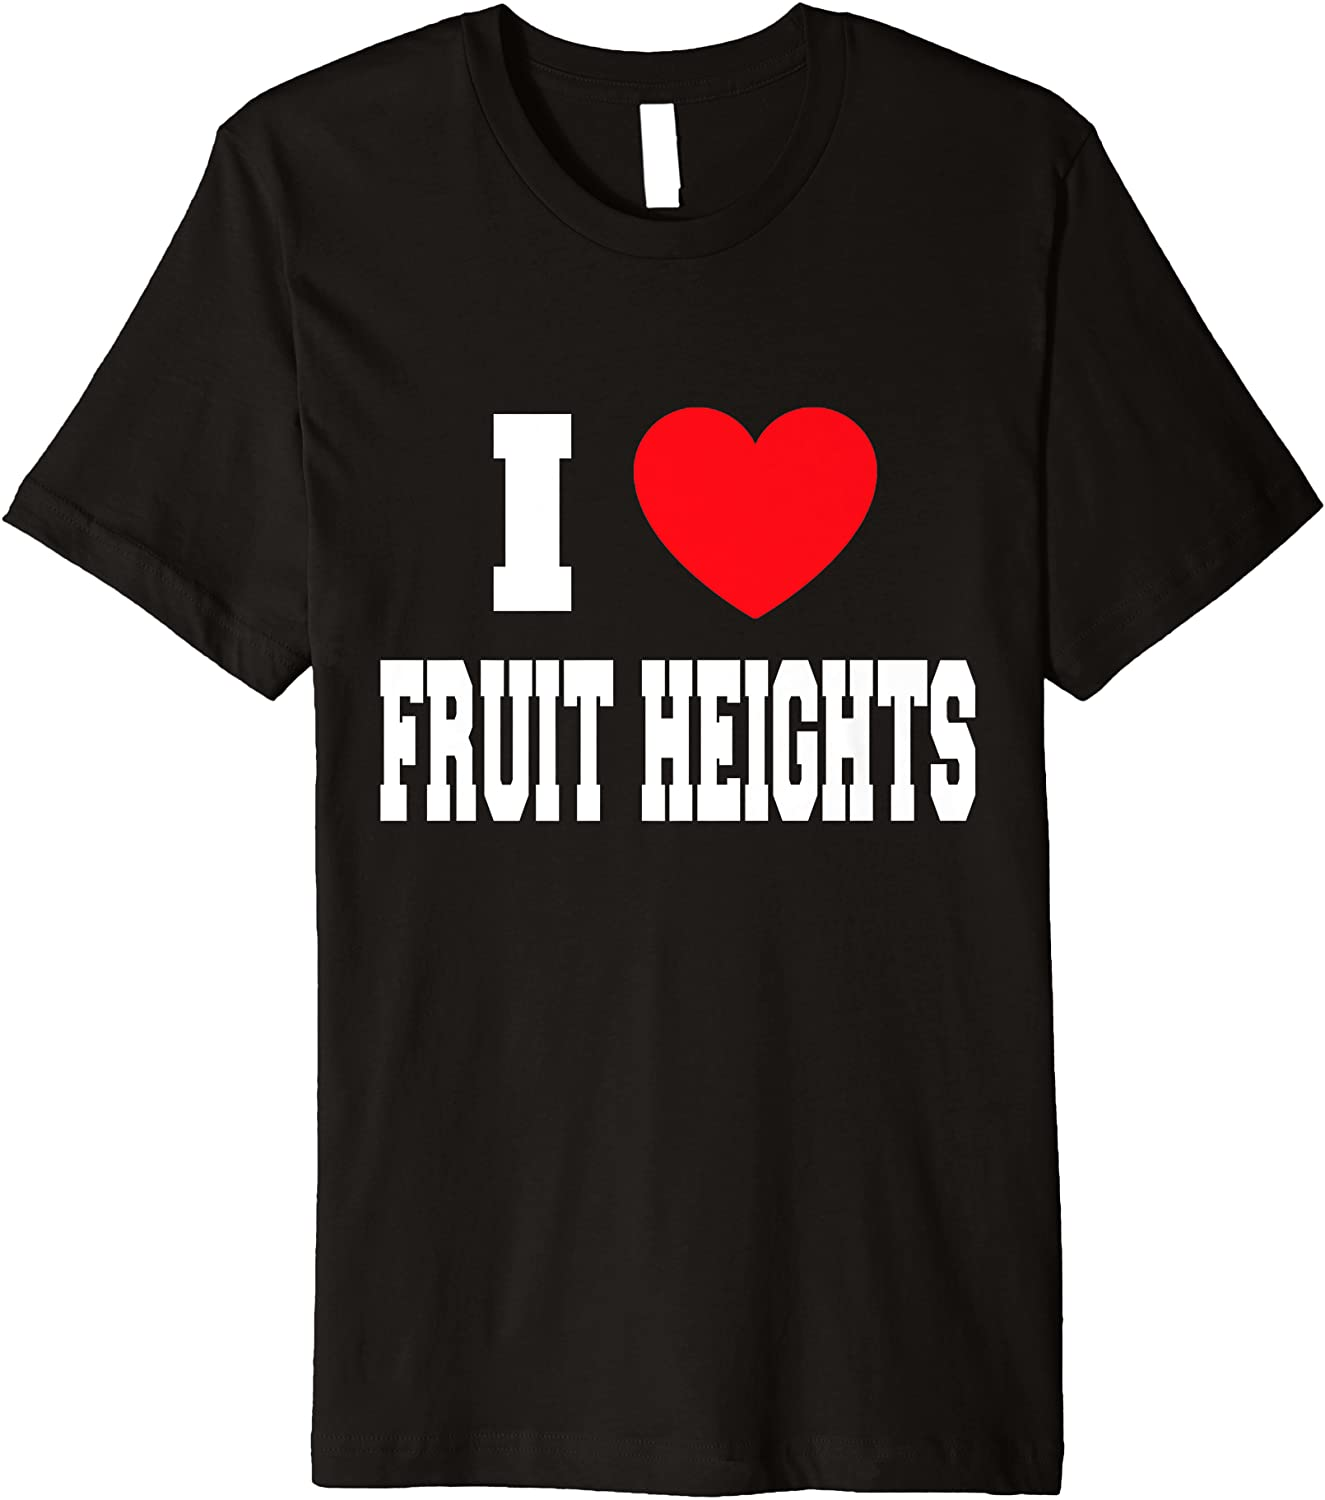 I Love Fruit We OFFer at cheap prices Premium Heights Financial sales sale T-Shirt